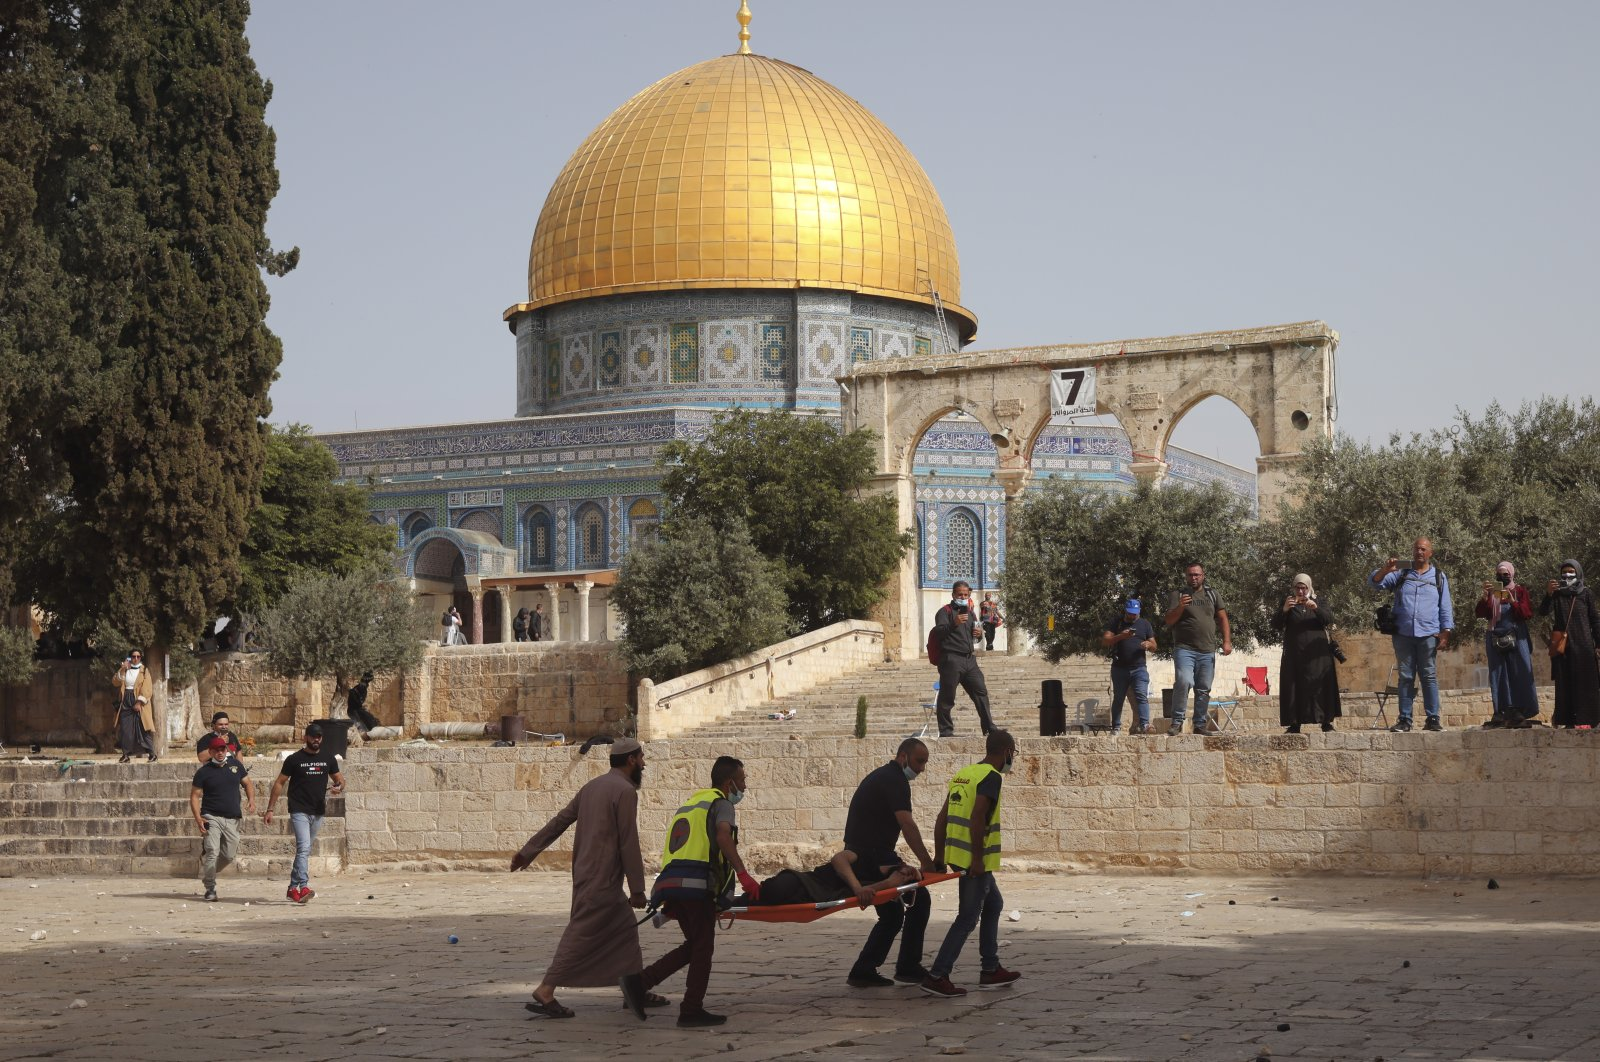 Palestinians evacuate a man wounded by Israeli forces in front of the Dome of the Rock Mosque at the Al Aqsa Mosque compound in Jerusalem's Old City, May 10, 2021. (AP Photo)